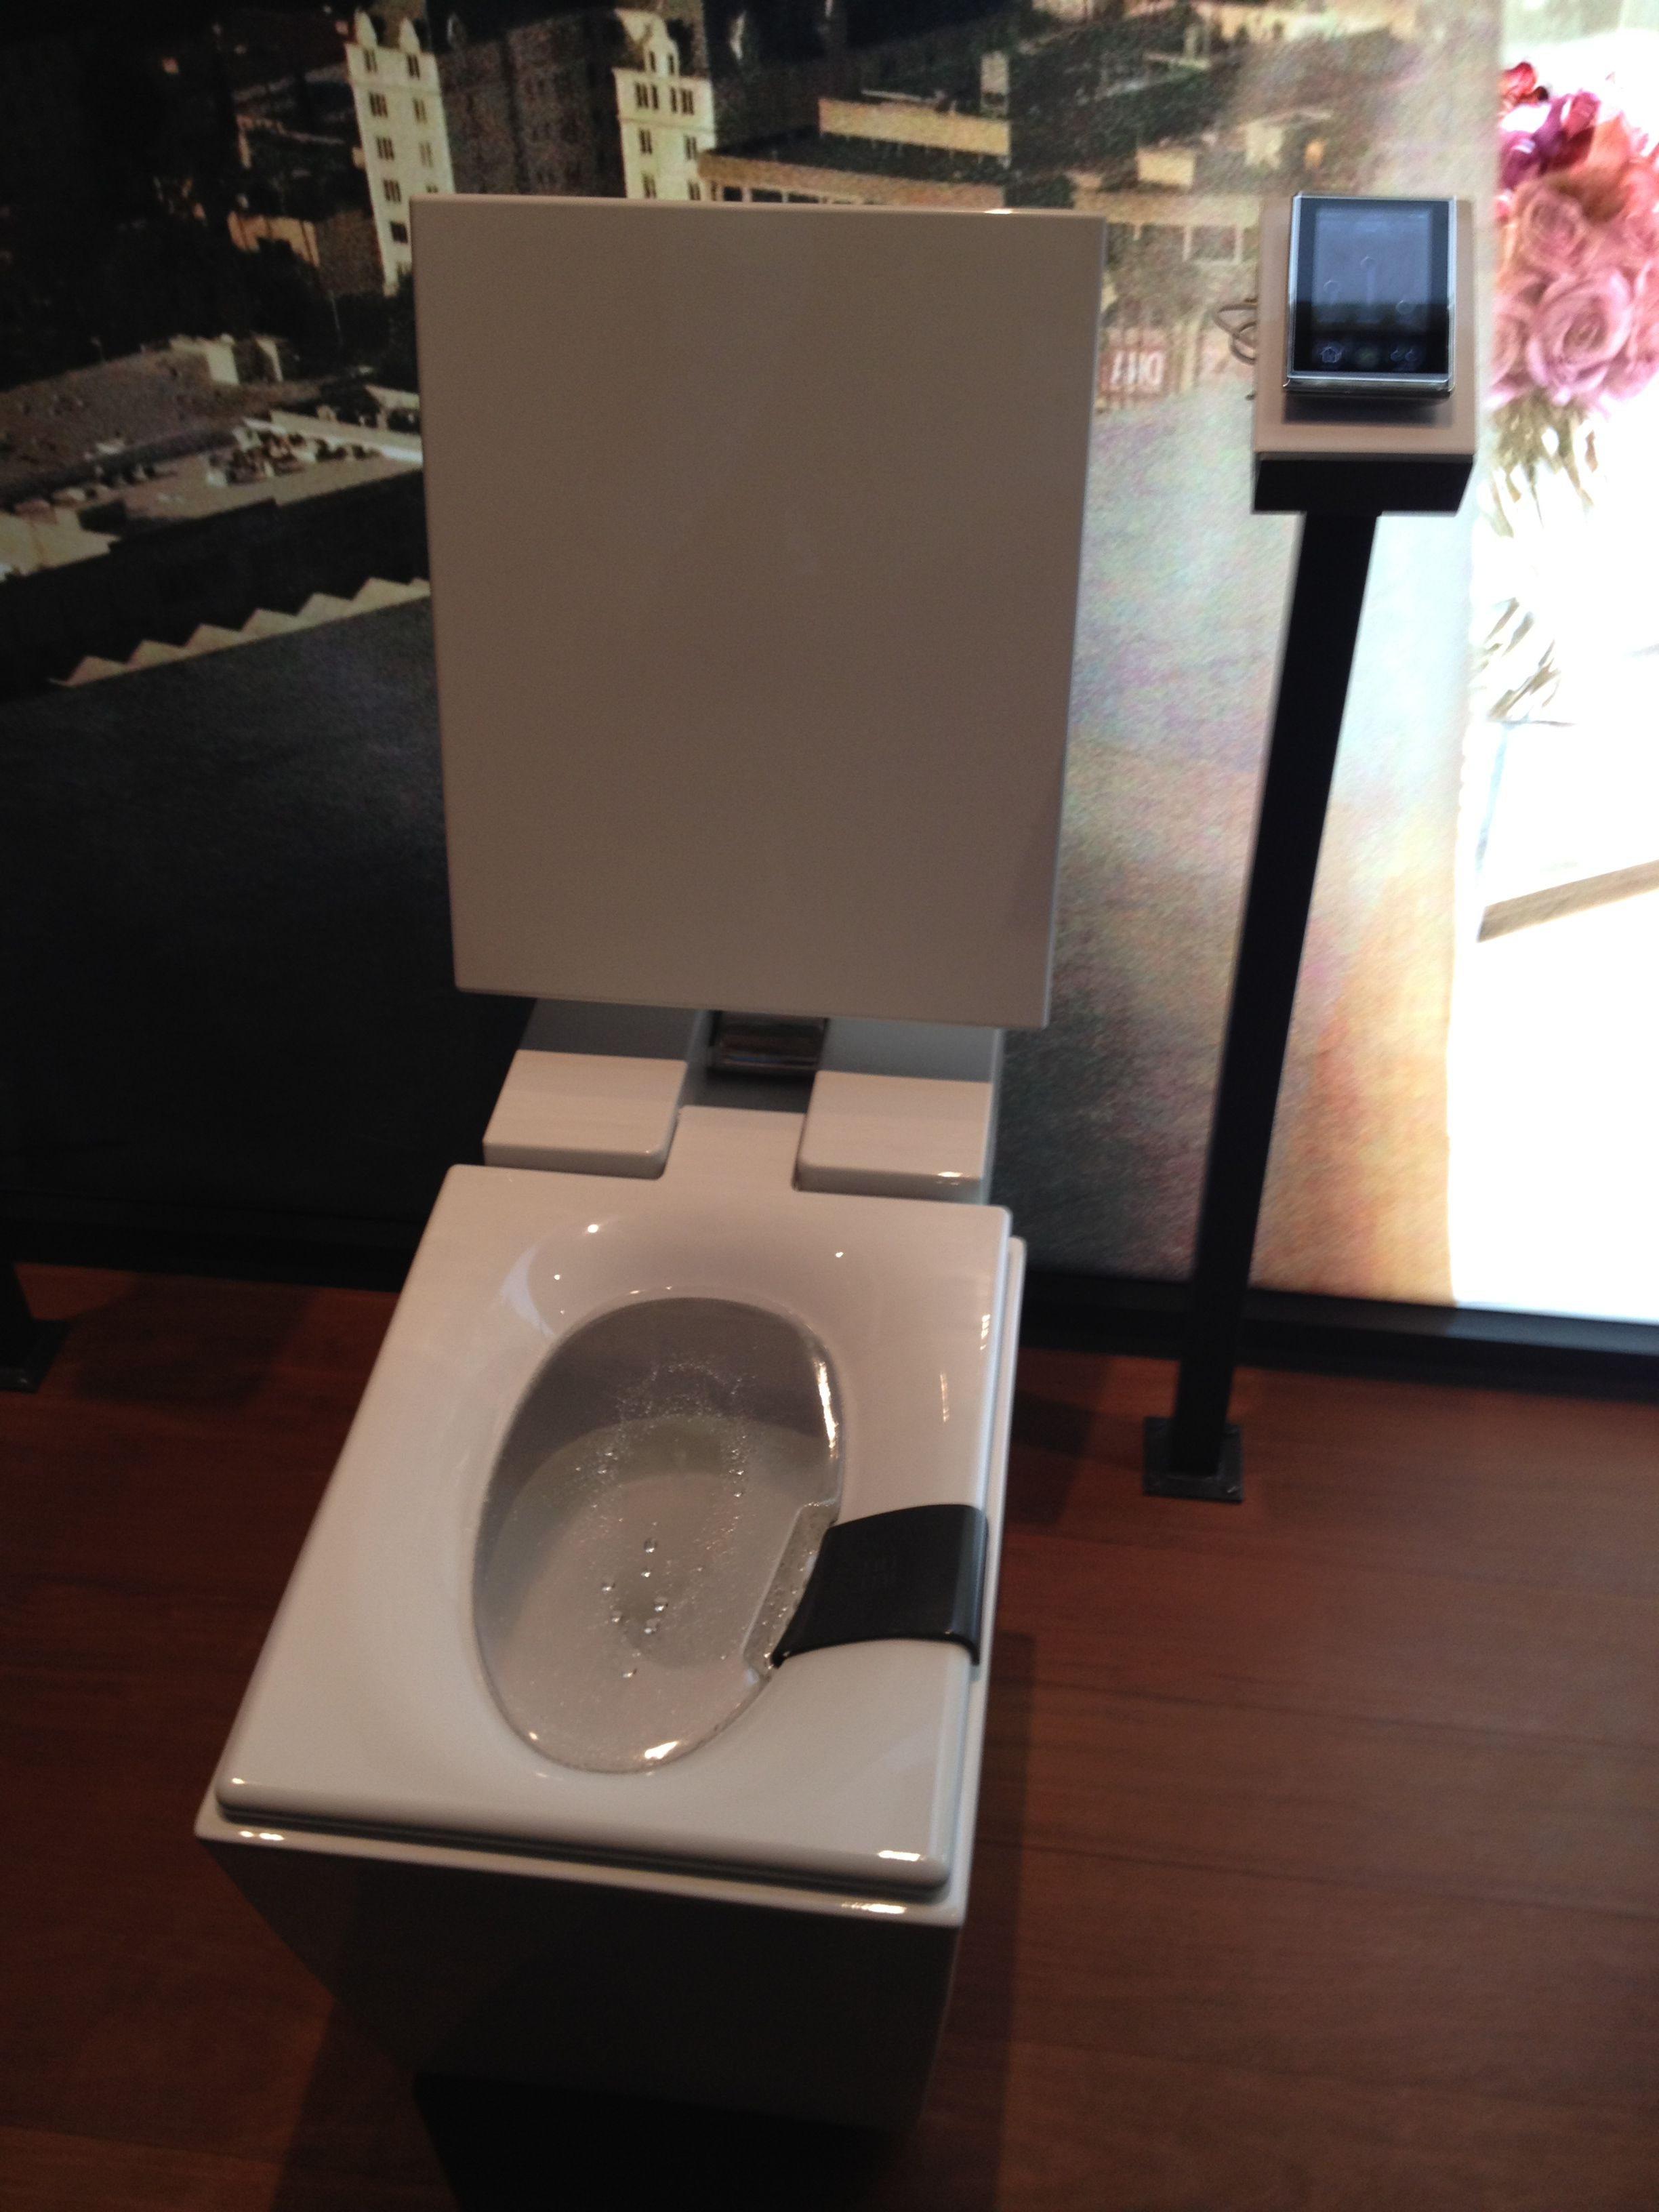 Amazing Kohler Numi A Toilet With Heated Seats And Motion Sensors Caraccident5 Cool Chair Designs And Ideas Caraccident5Info